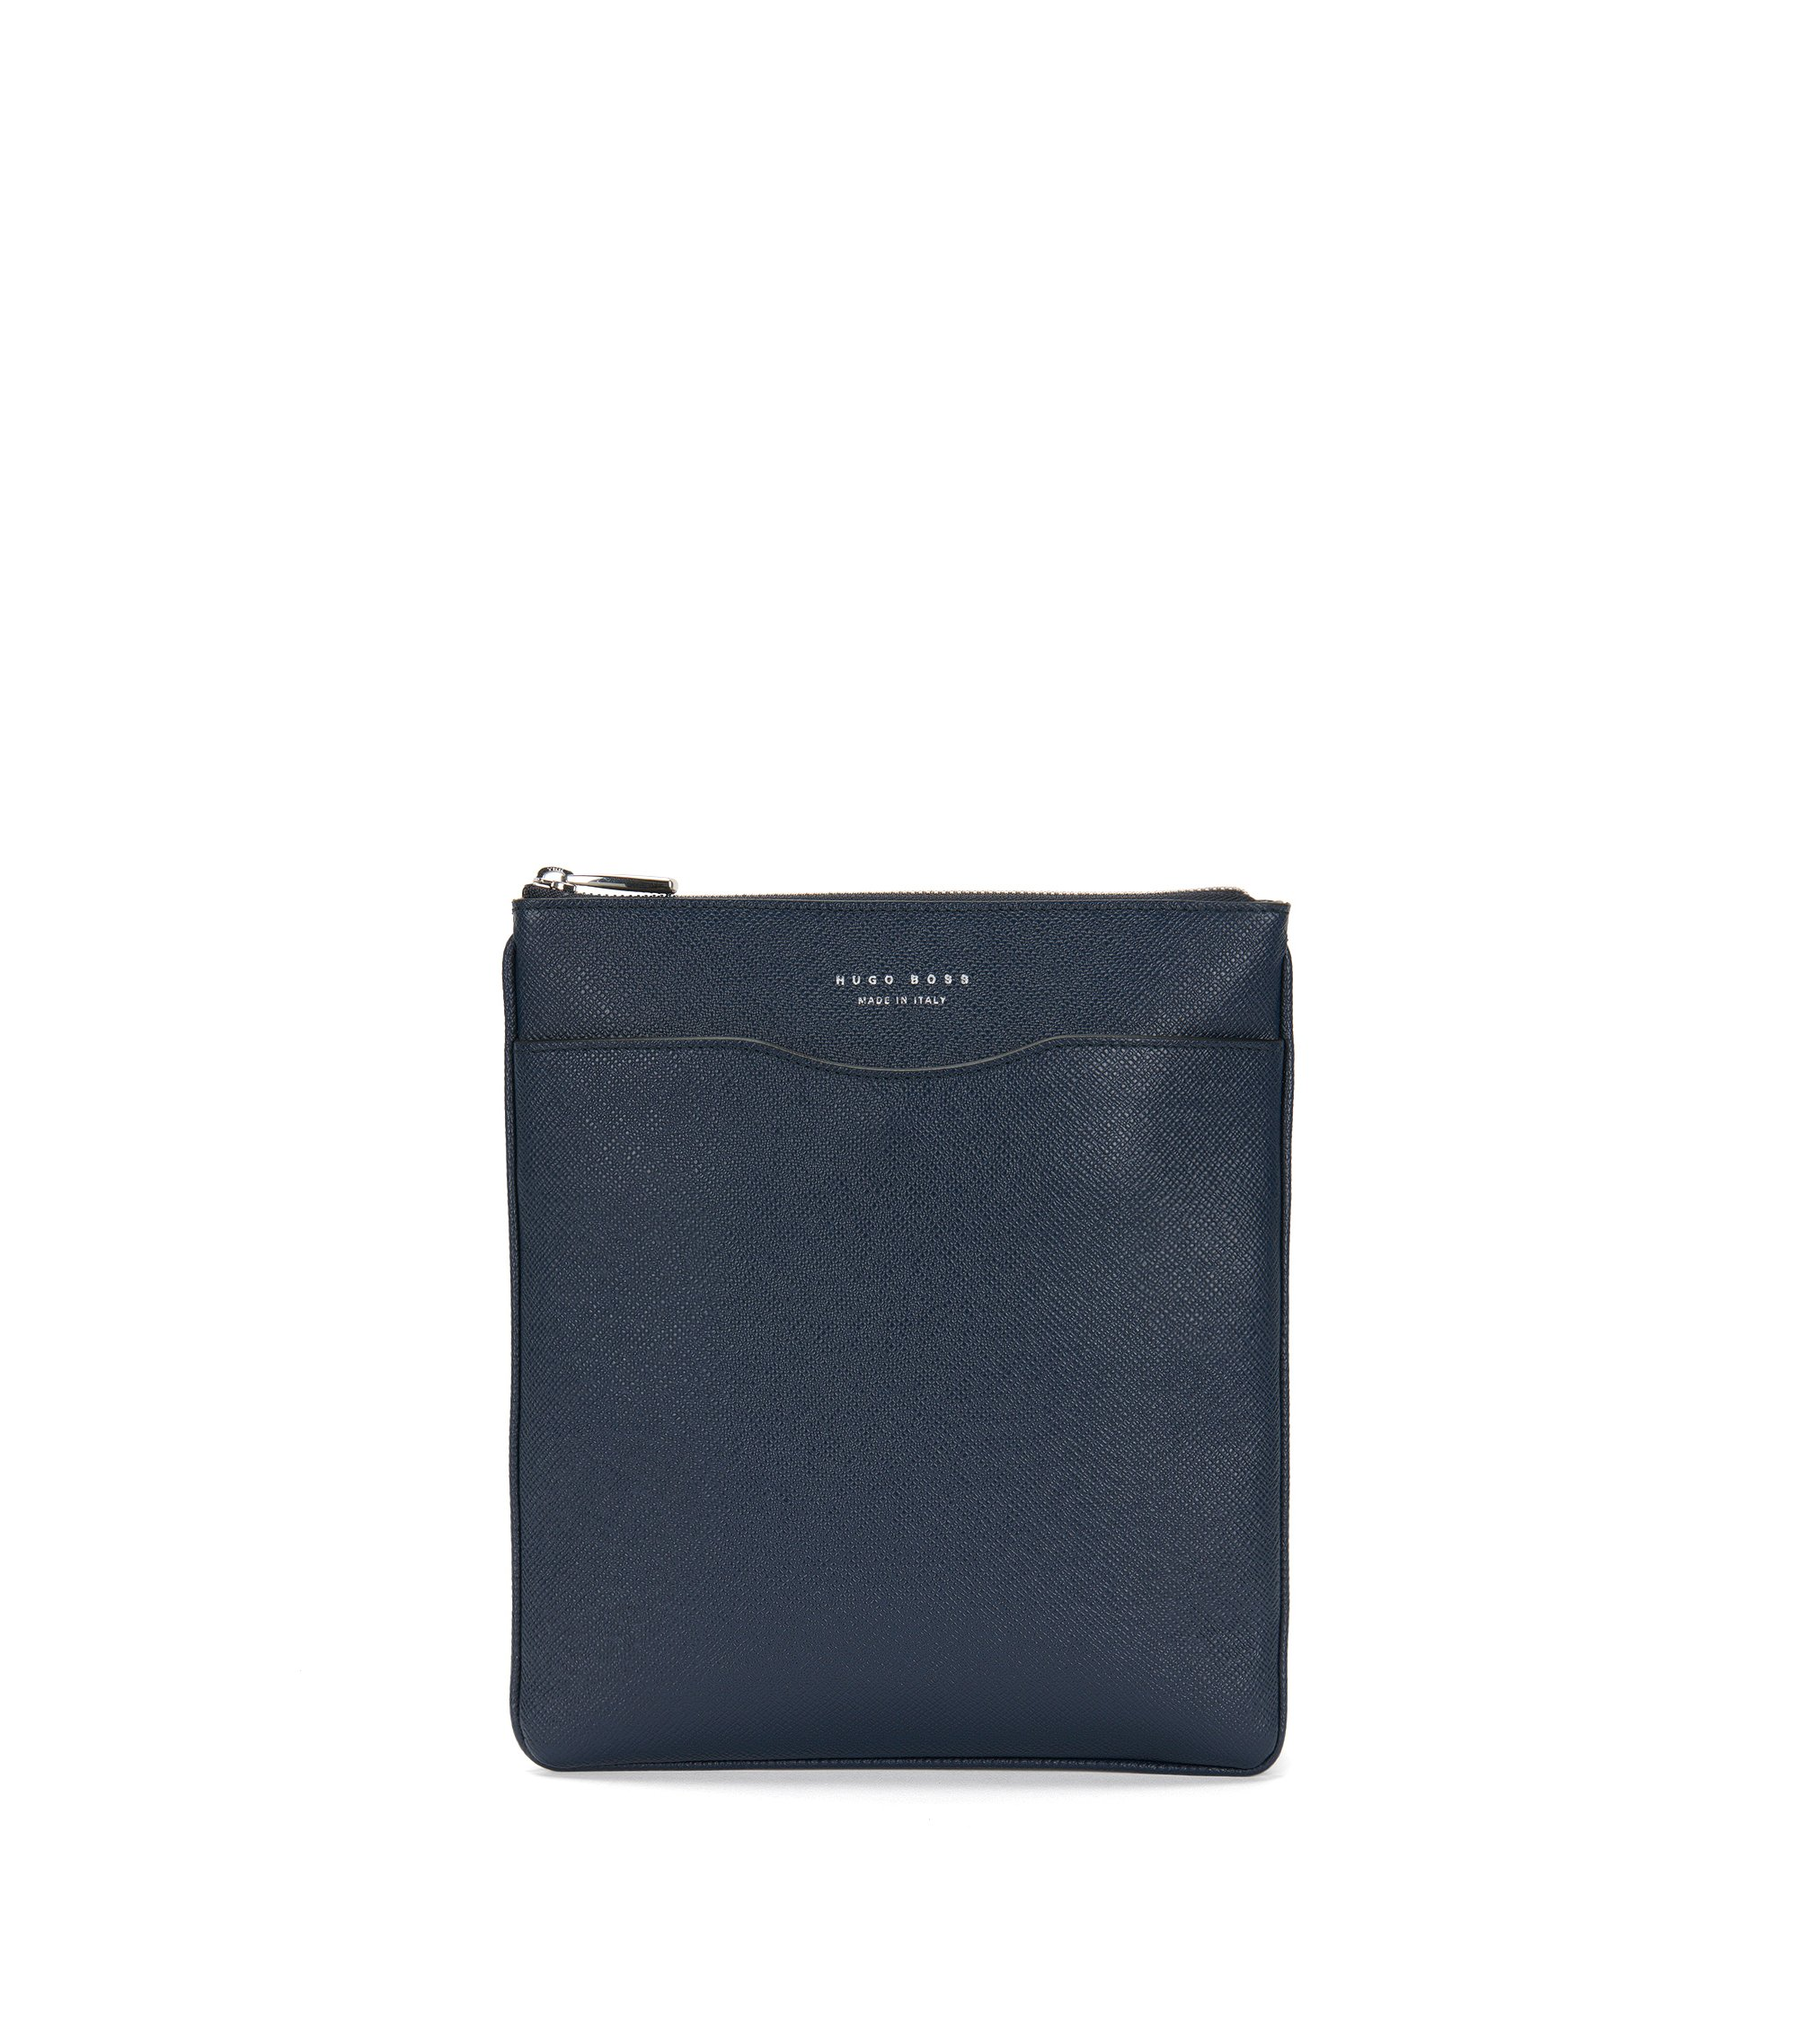 Crossbody-enveloptas van palmellatoleer uit de Signature Collection, Donkerblauw